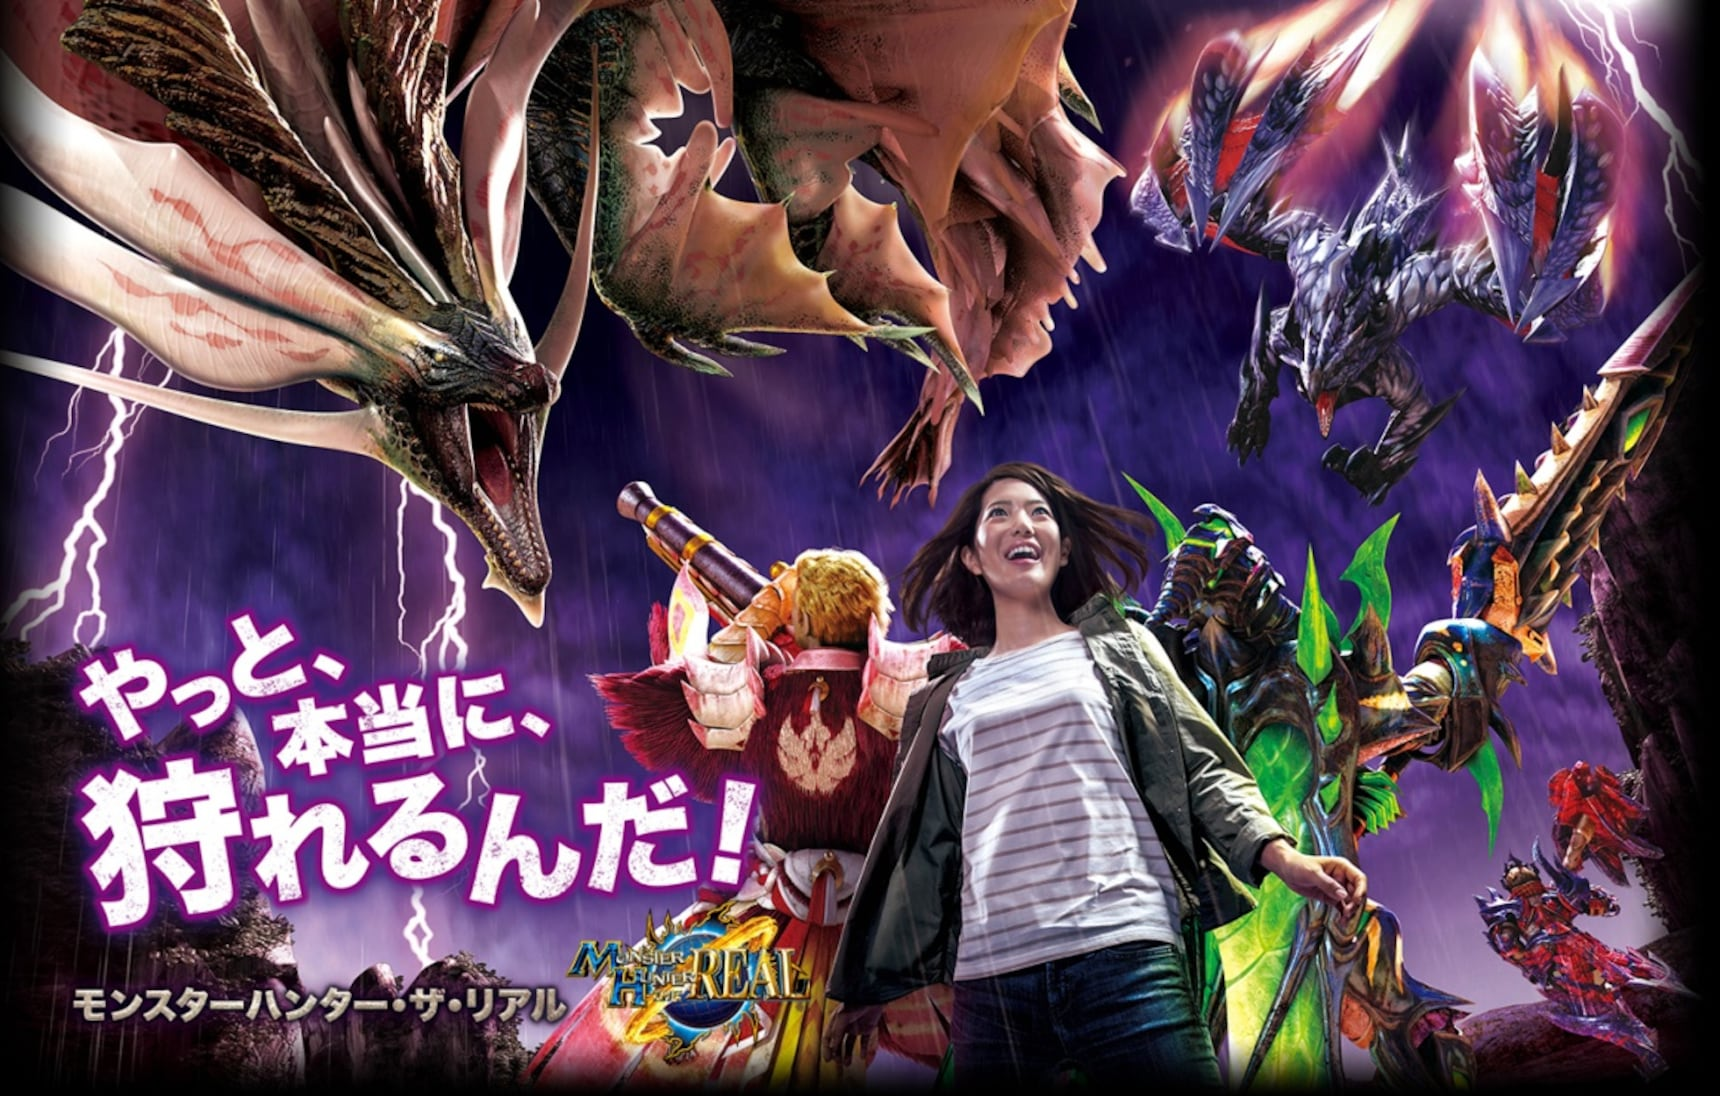 Larger Than Life Attractions Coming to USJ